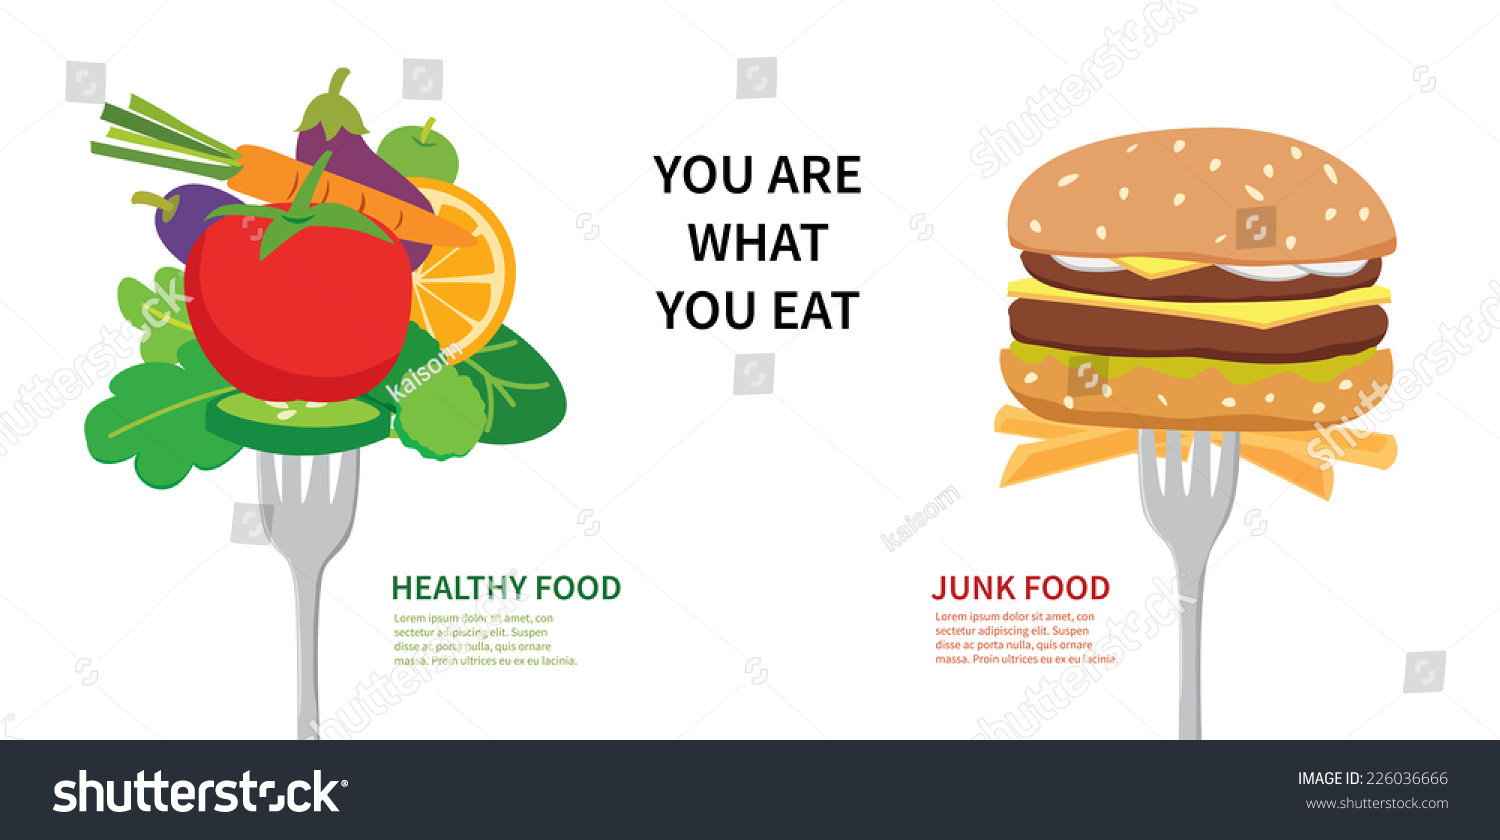 Food Concept You Are What You Eat Choose Between Healthy Food And